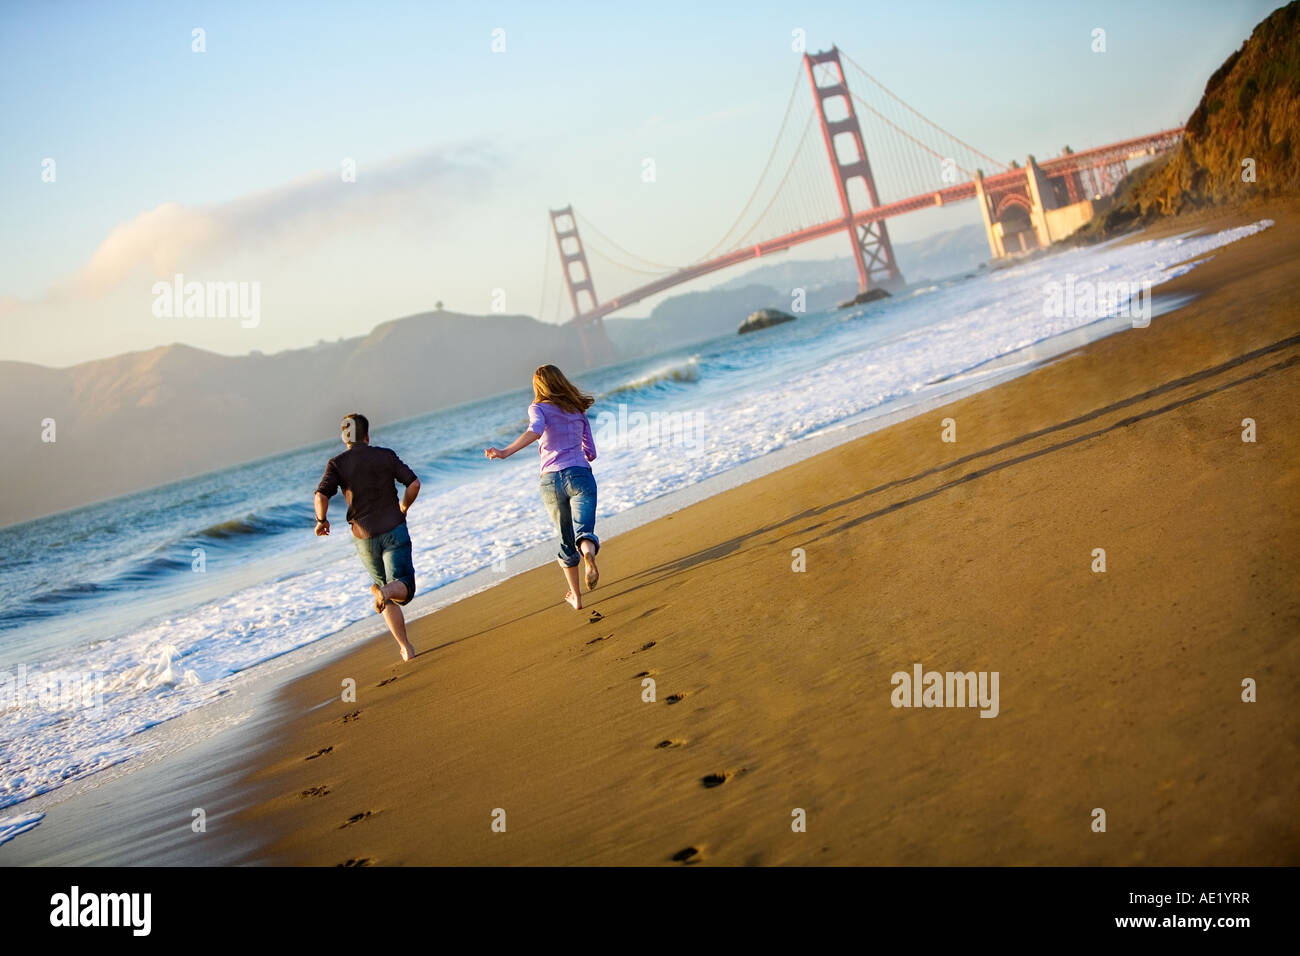 A couple running on the beach towards the golden gate bridge leaving footprints on the golden sand beach and ocean - Stock Image